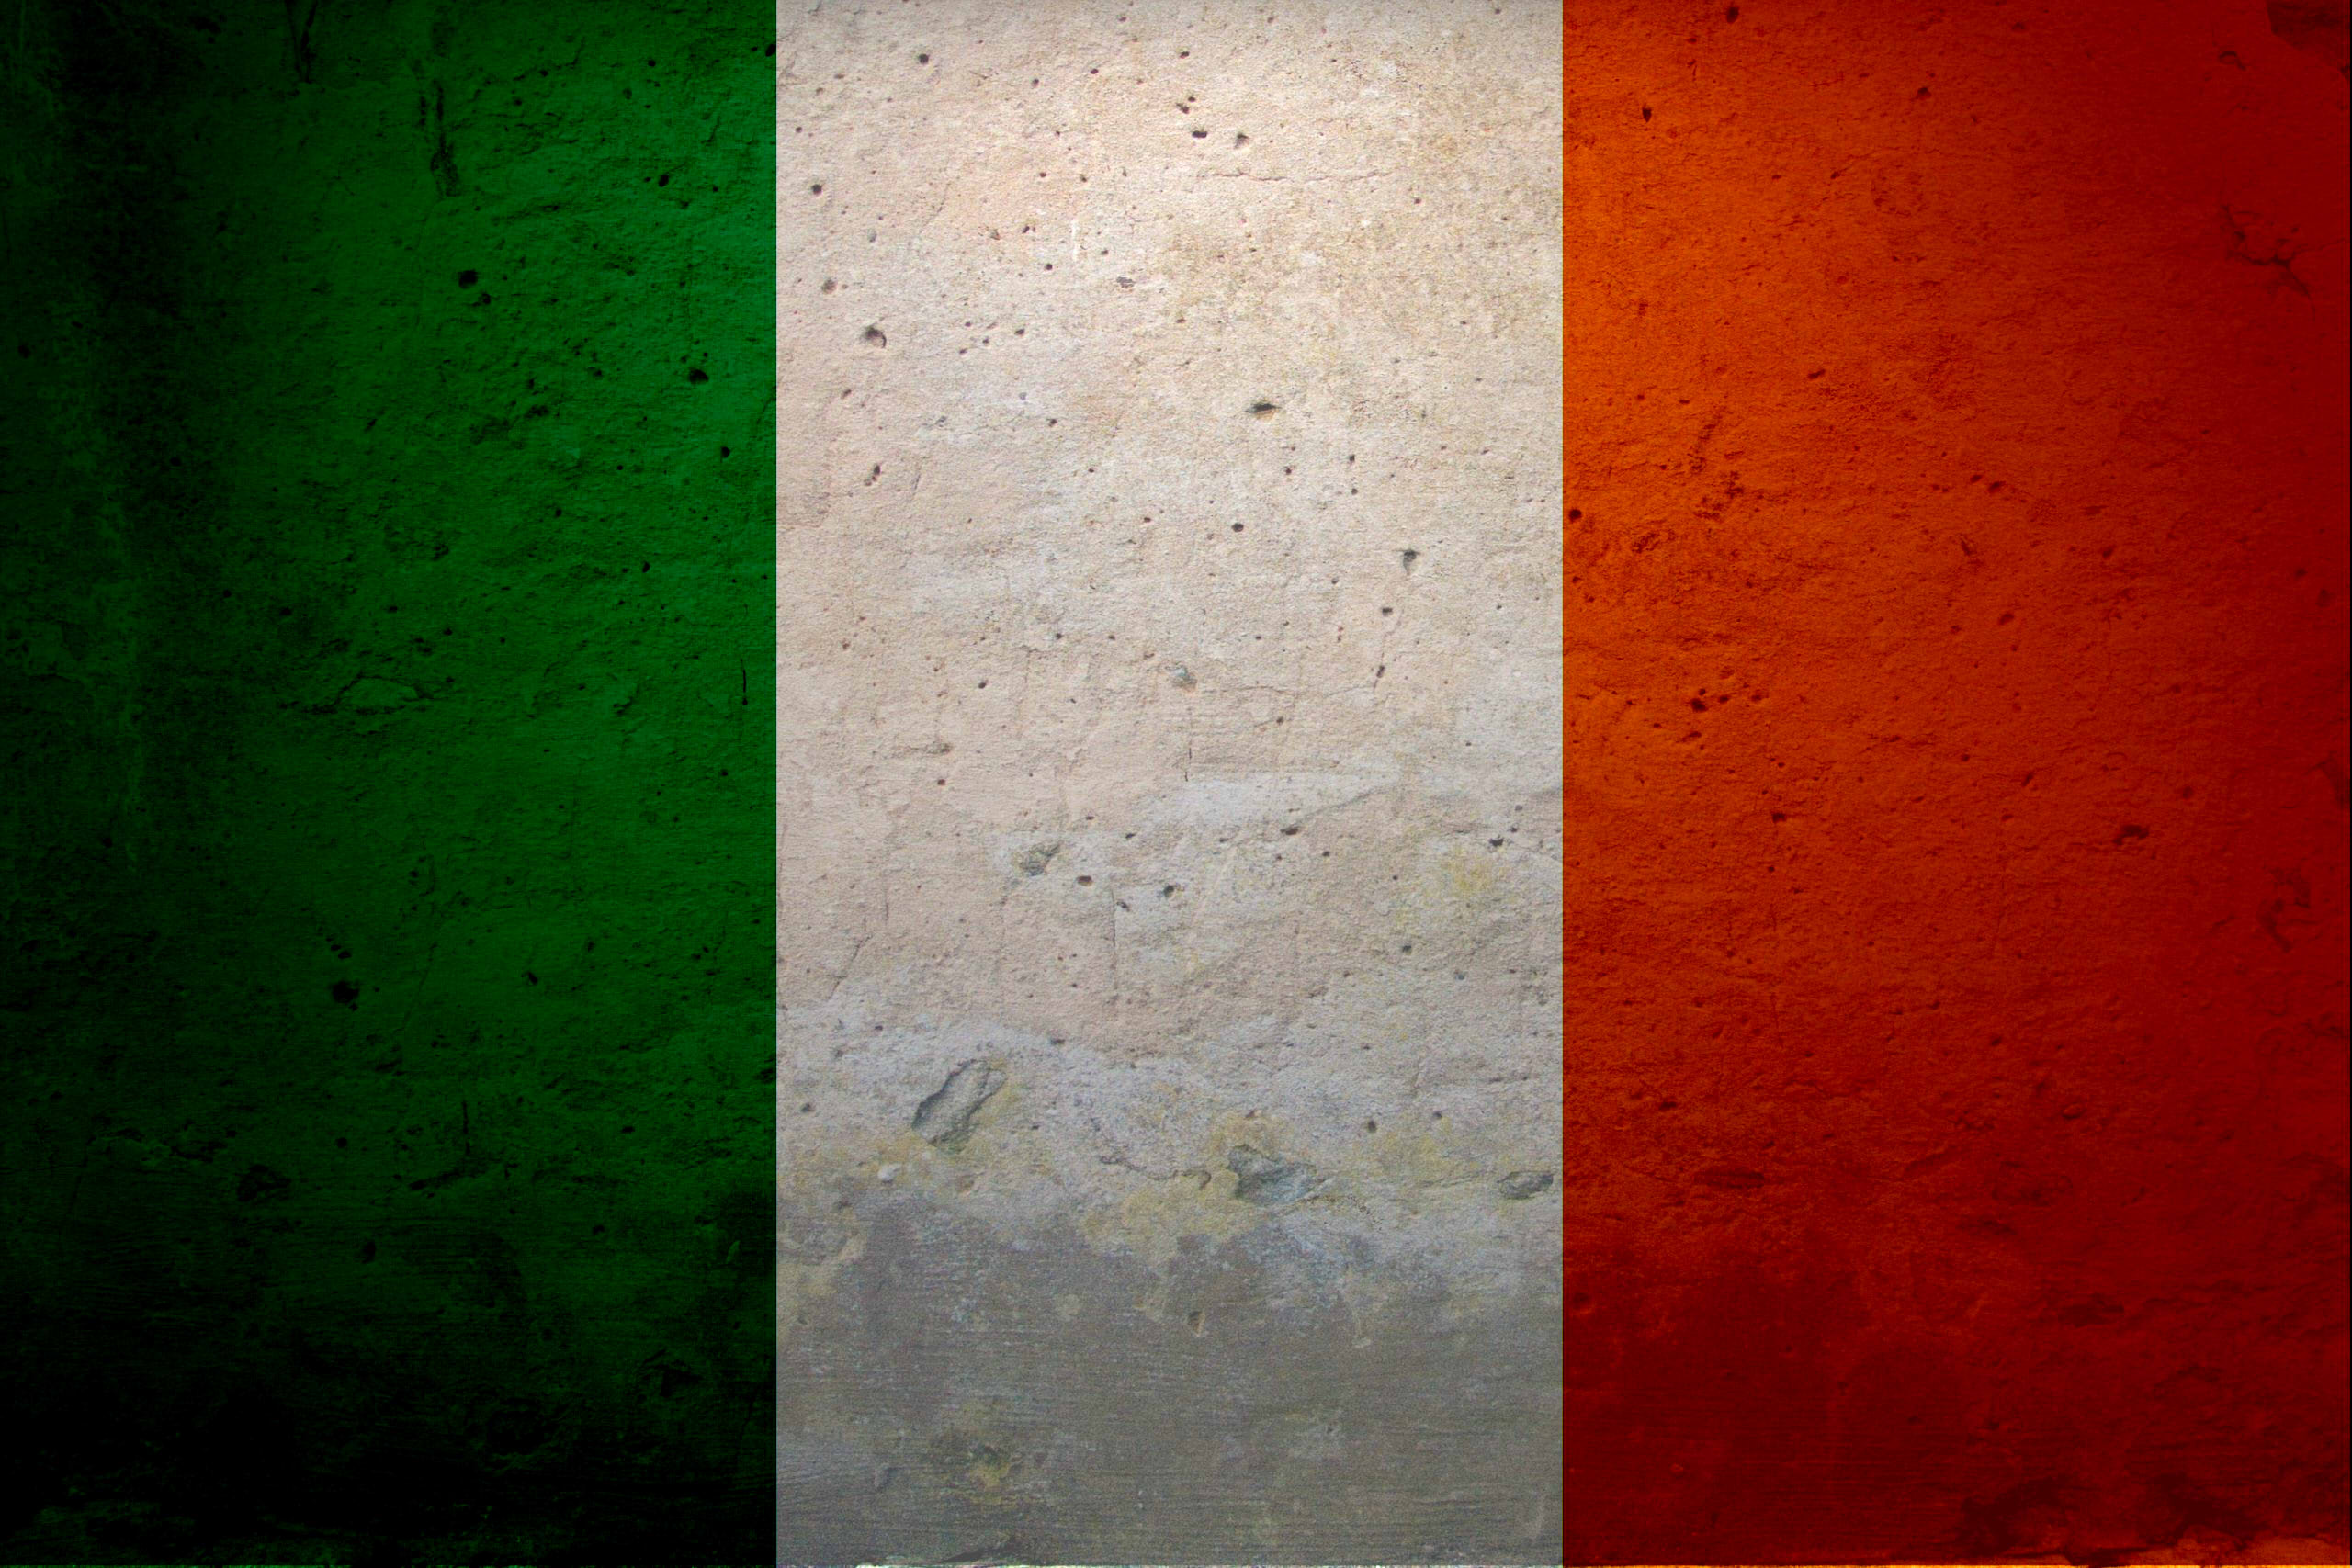 Flag Of Italy Hd Wallpaper Hintergrund 2560x1707 Id 67606 Wallpaper Abyss